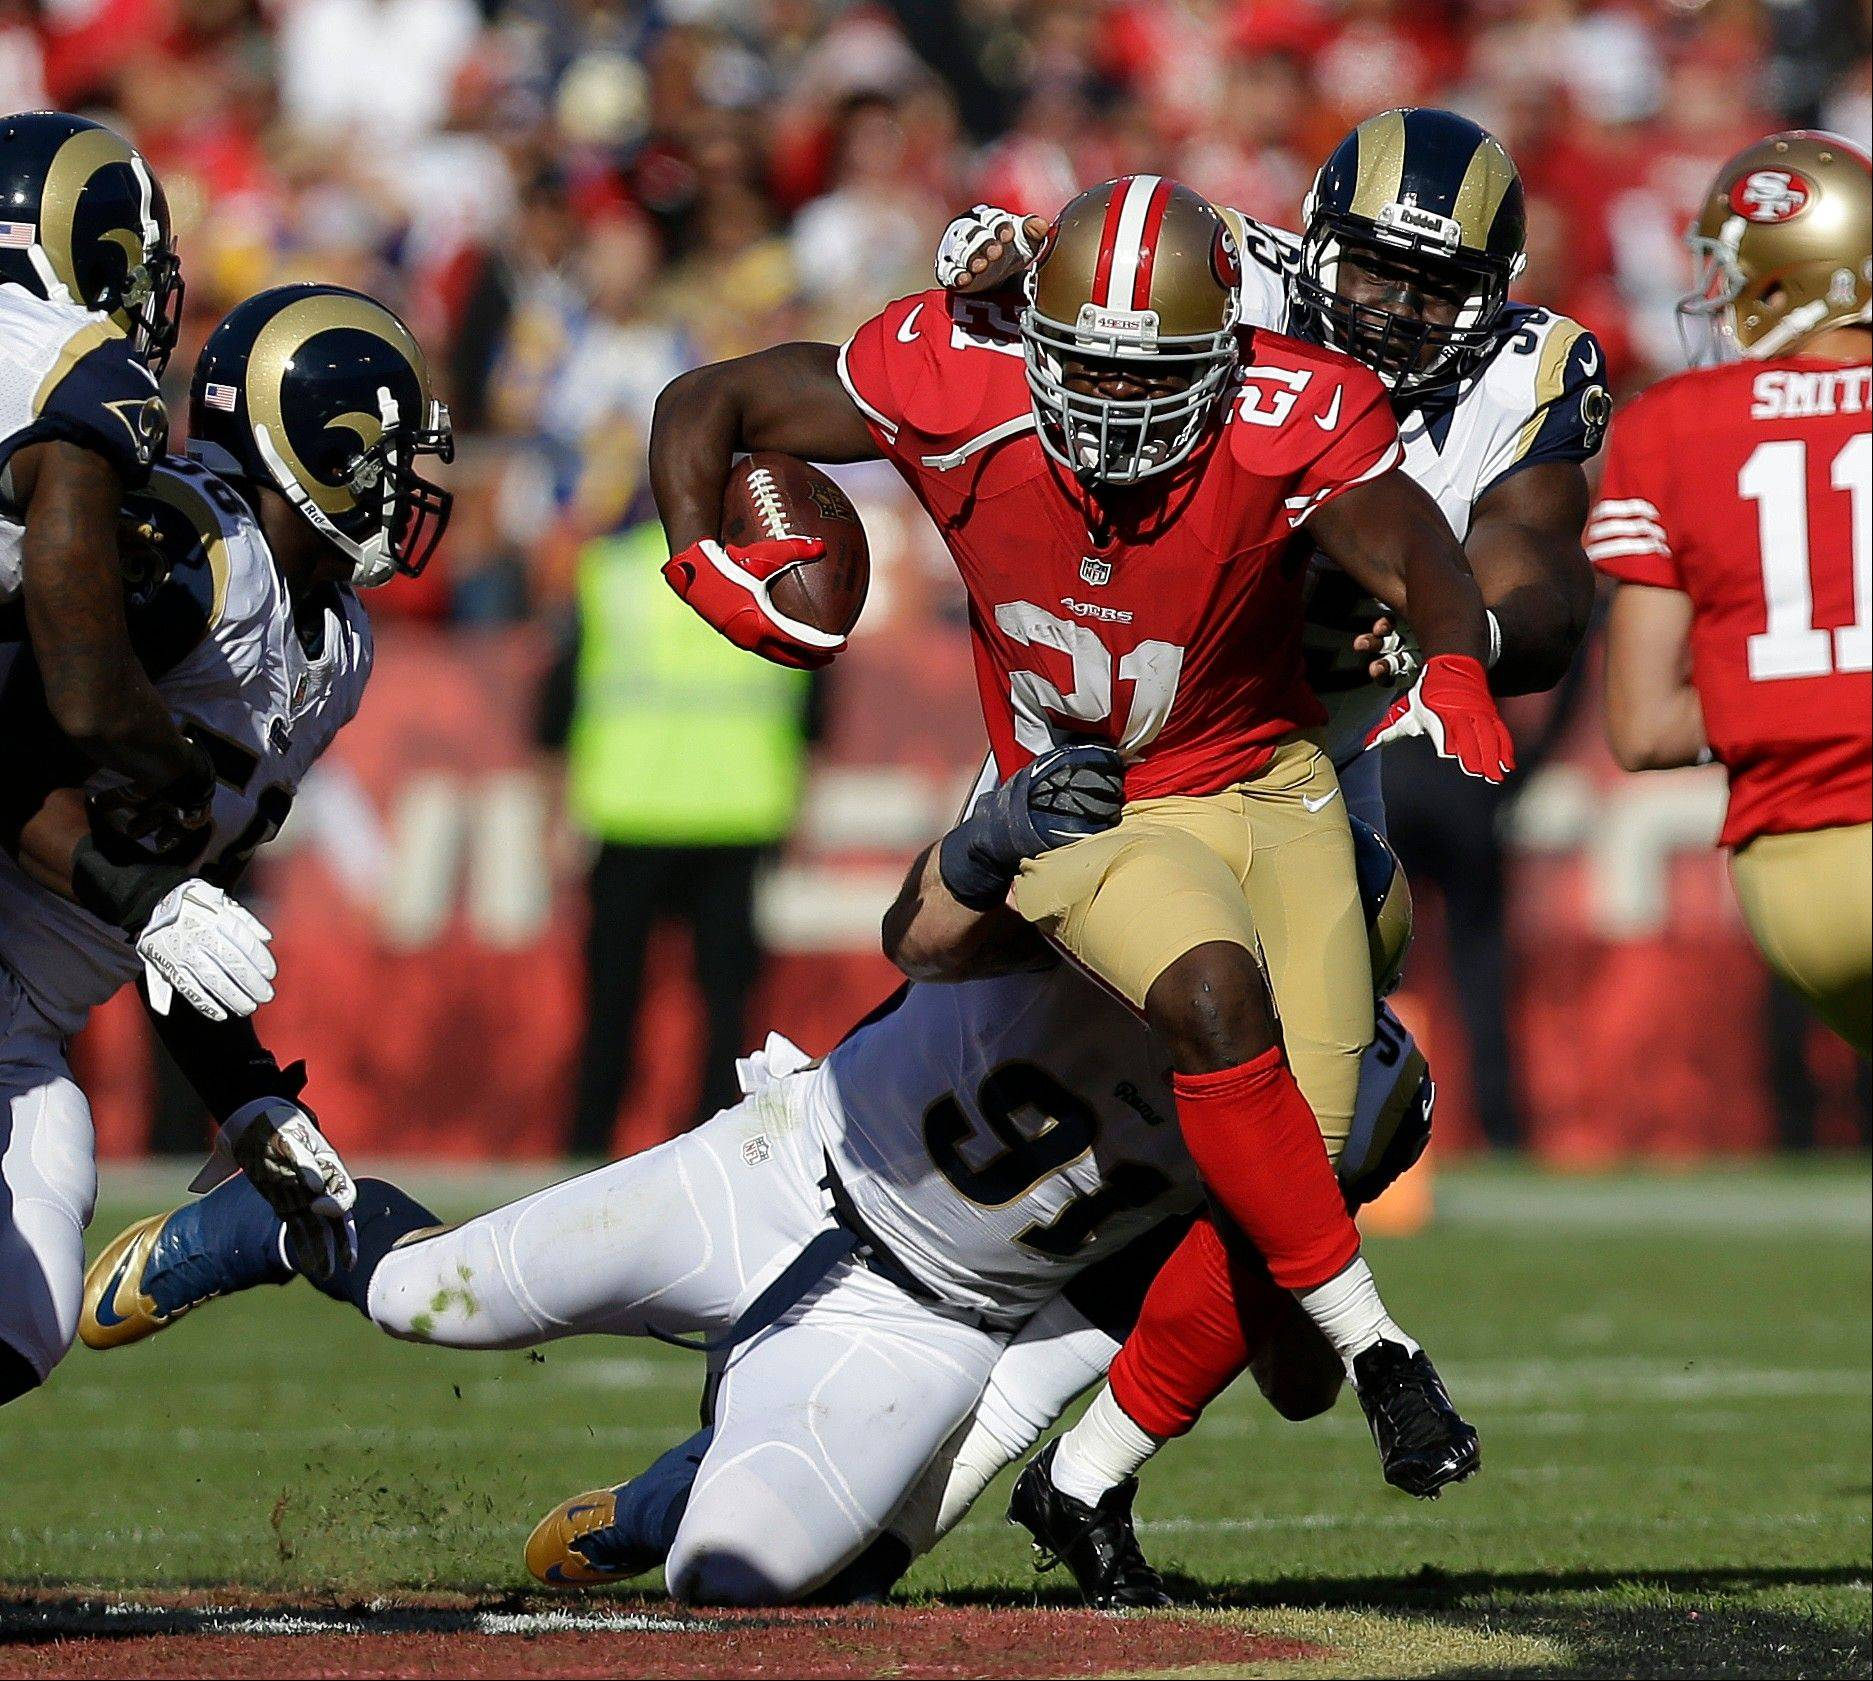 Running back Frank Gore is the engine that powers the San Francisco 49ers' offensive attack.